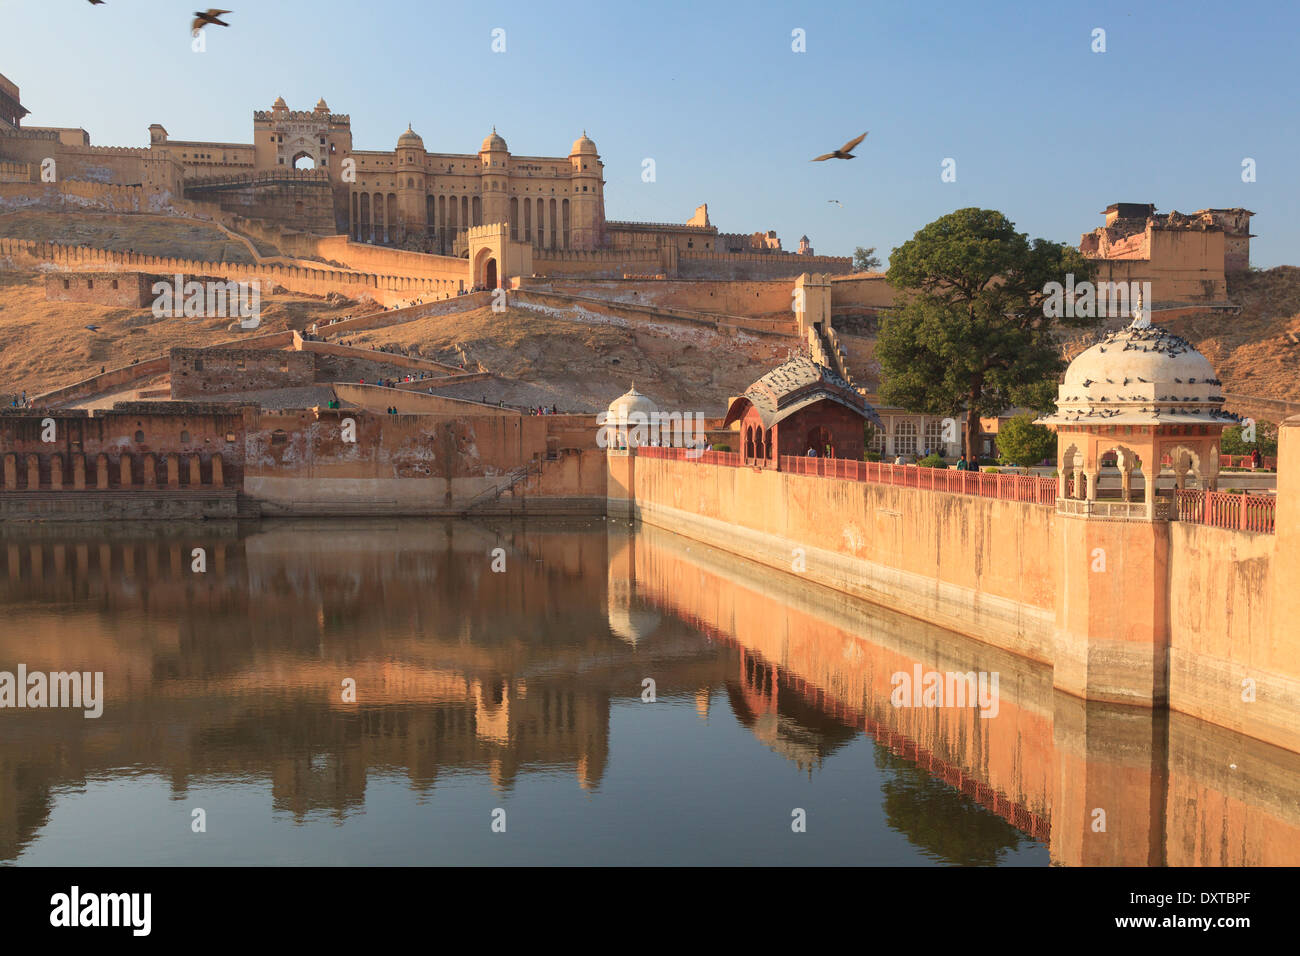 L'Inde, Rajasthan, Jaipur, Amber Fort Photo Stock